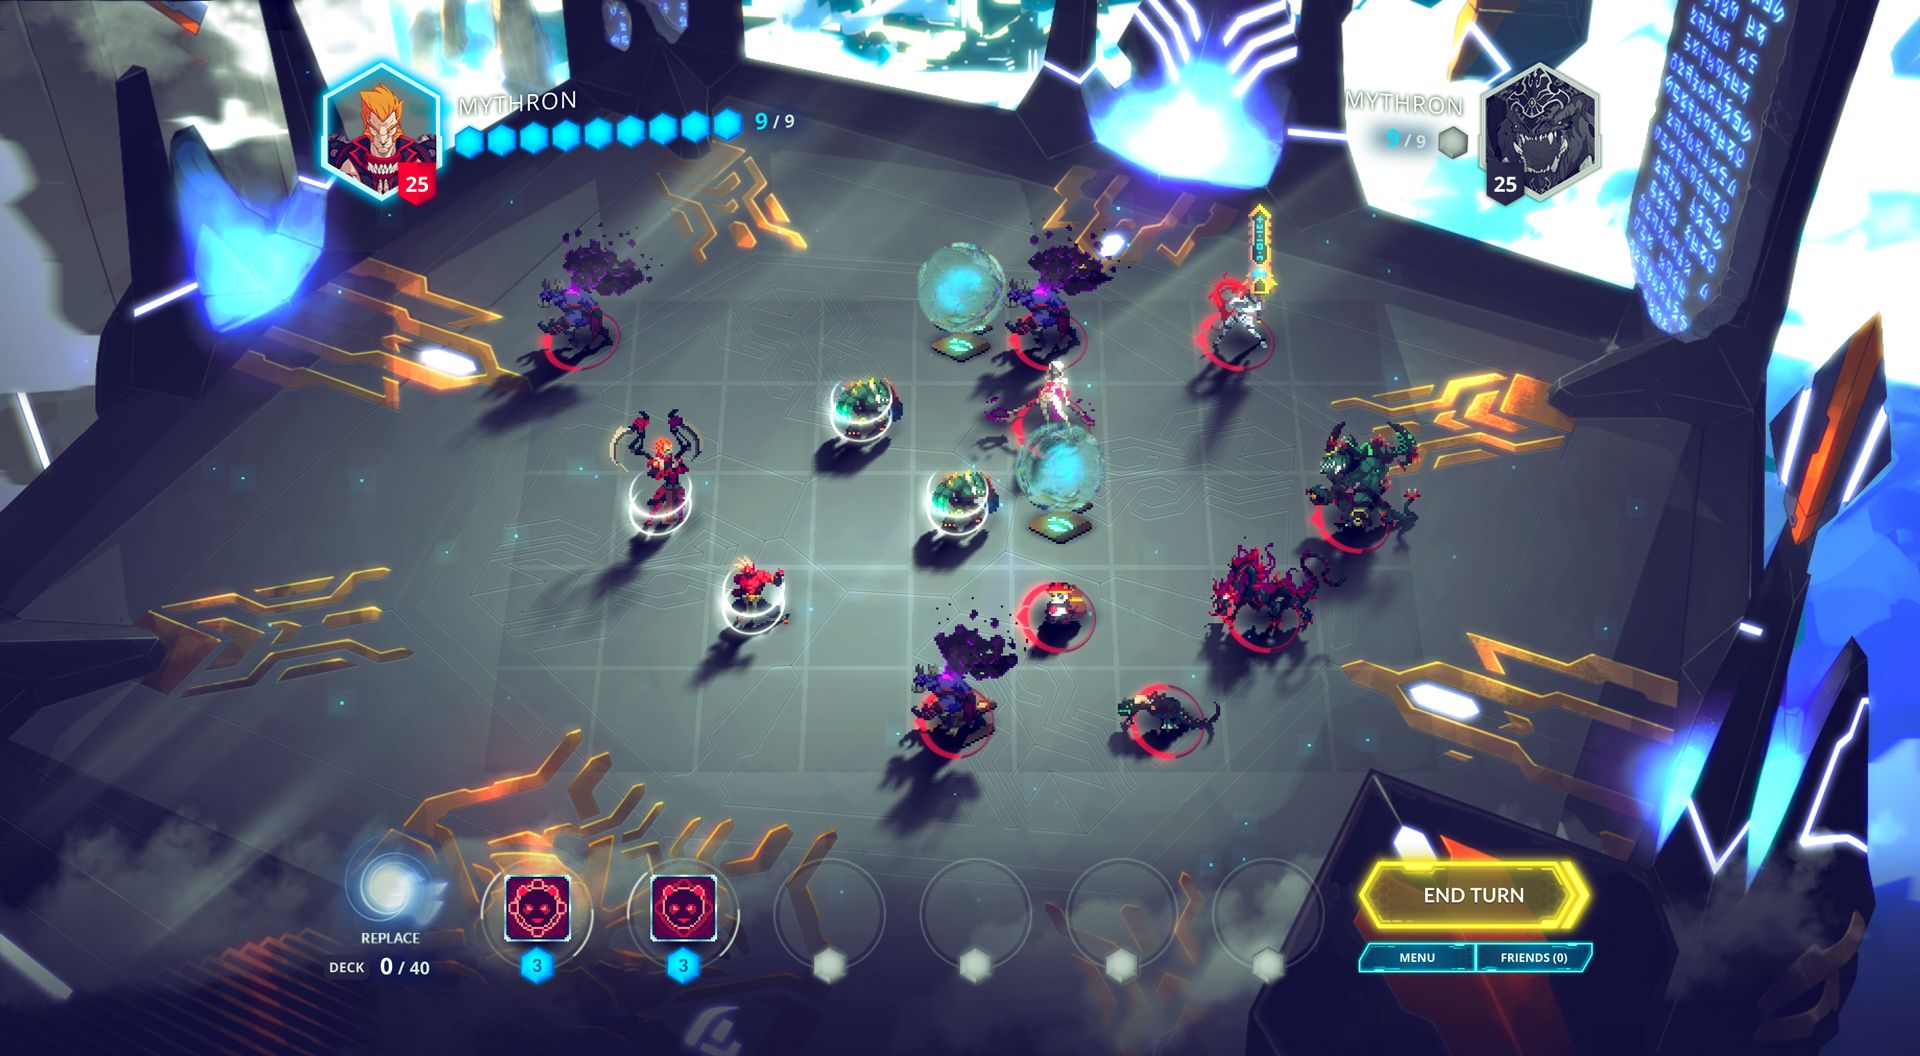 competitive tactics game 'Duelyst' is out today